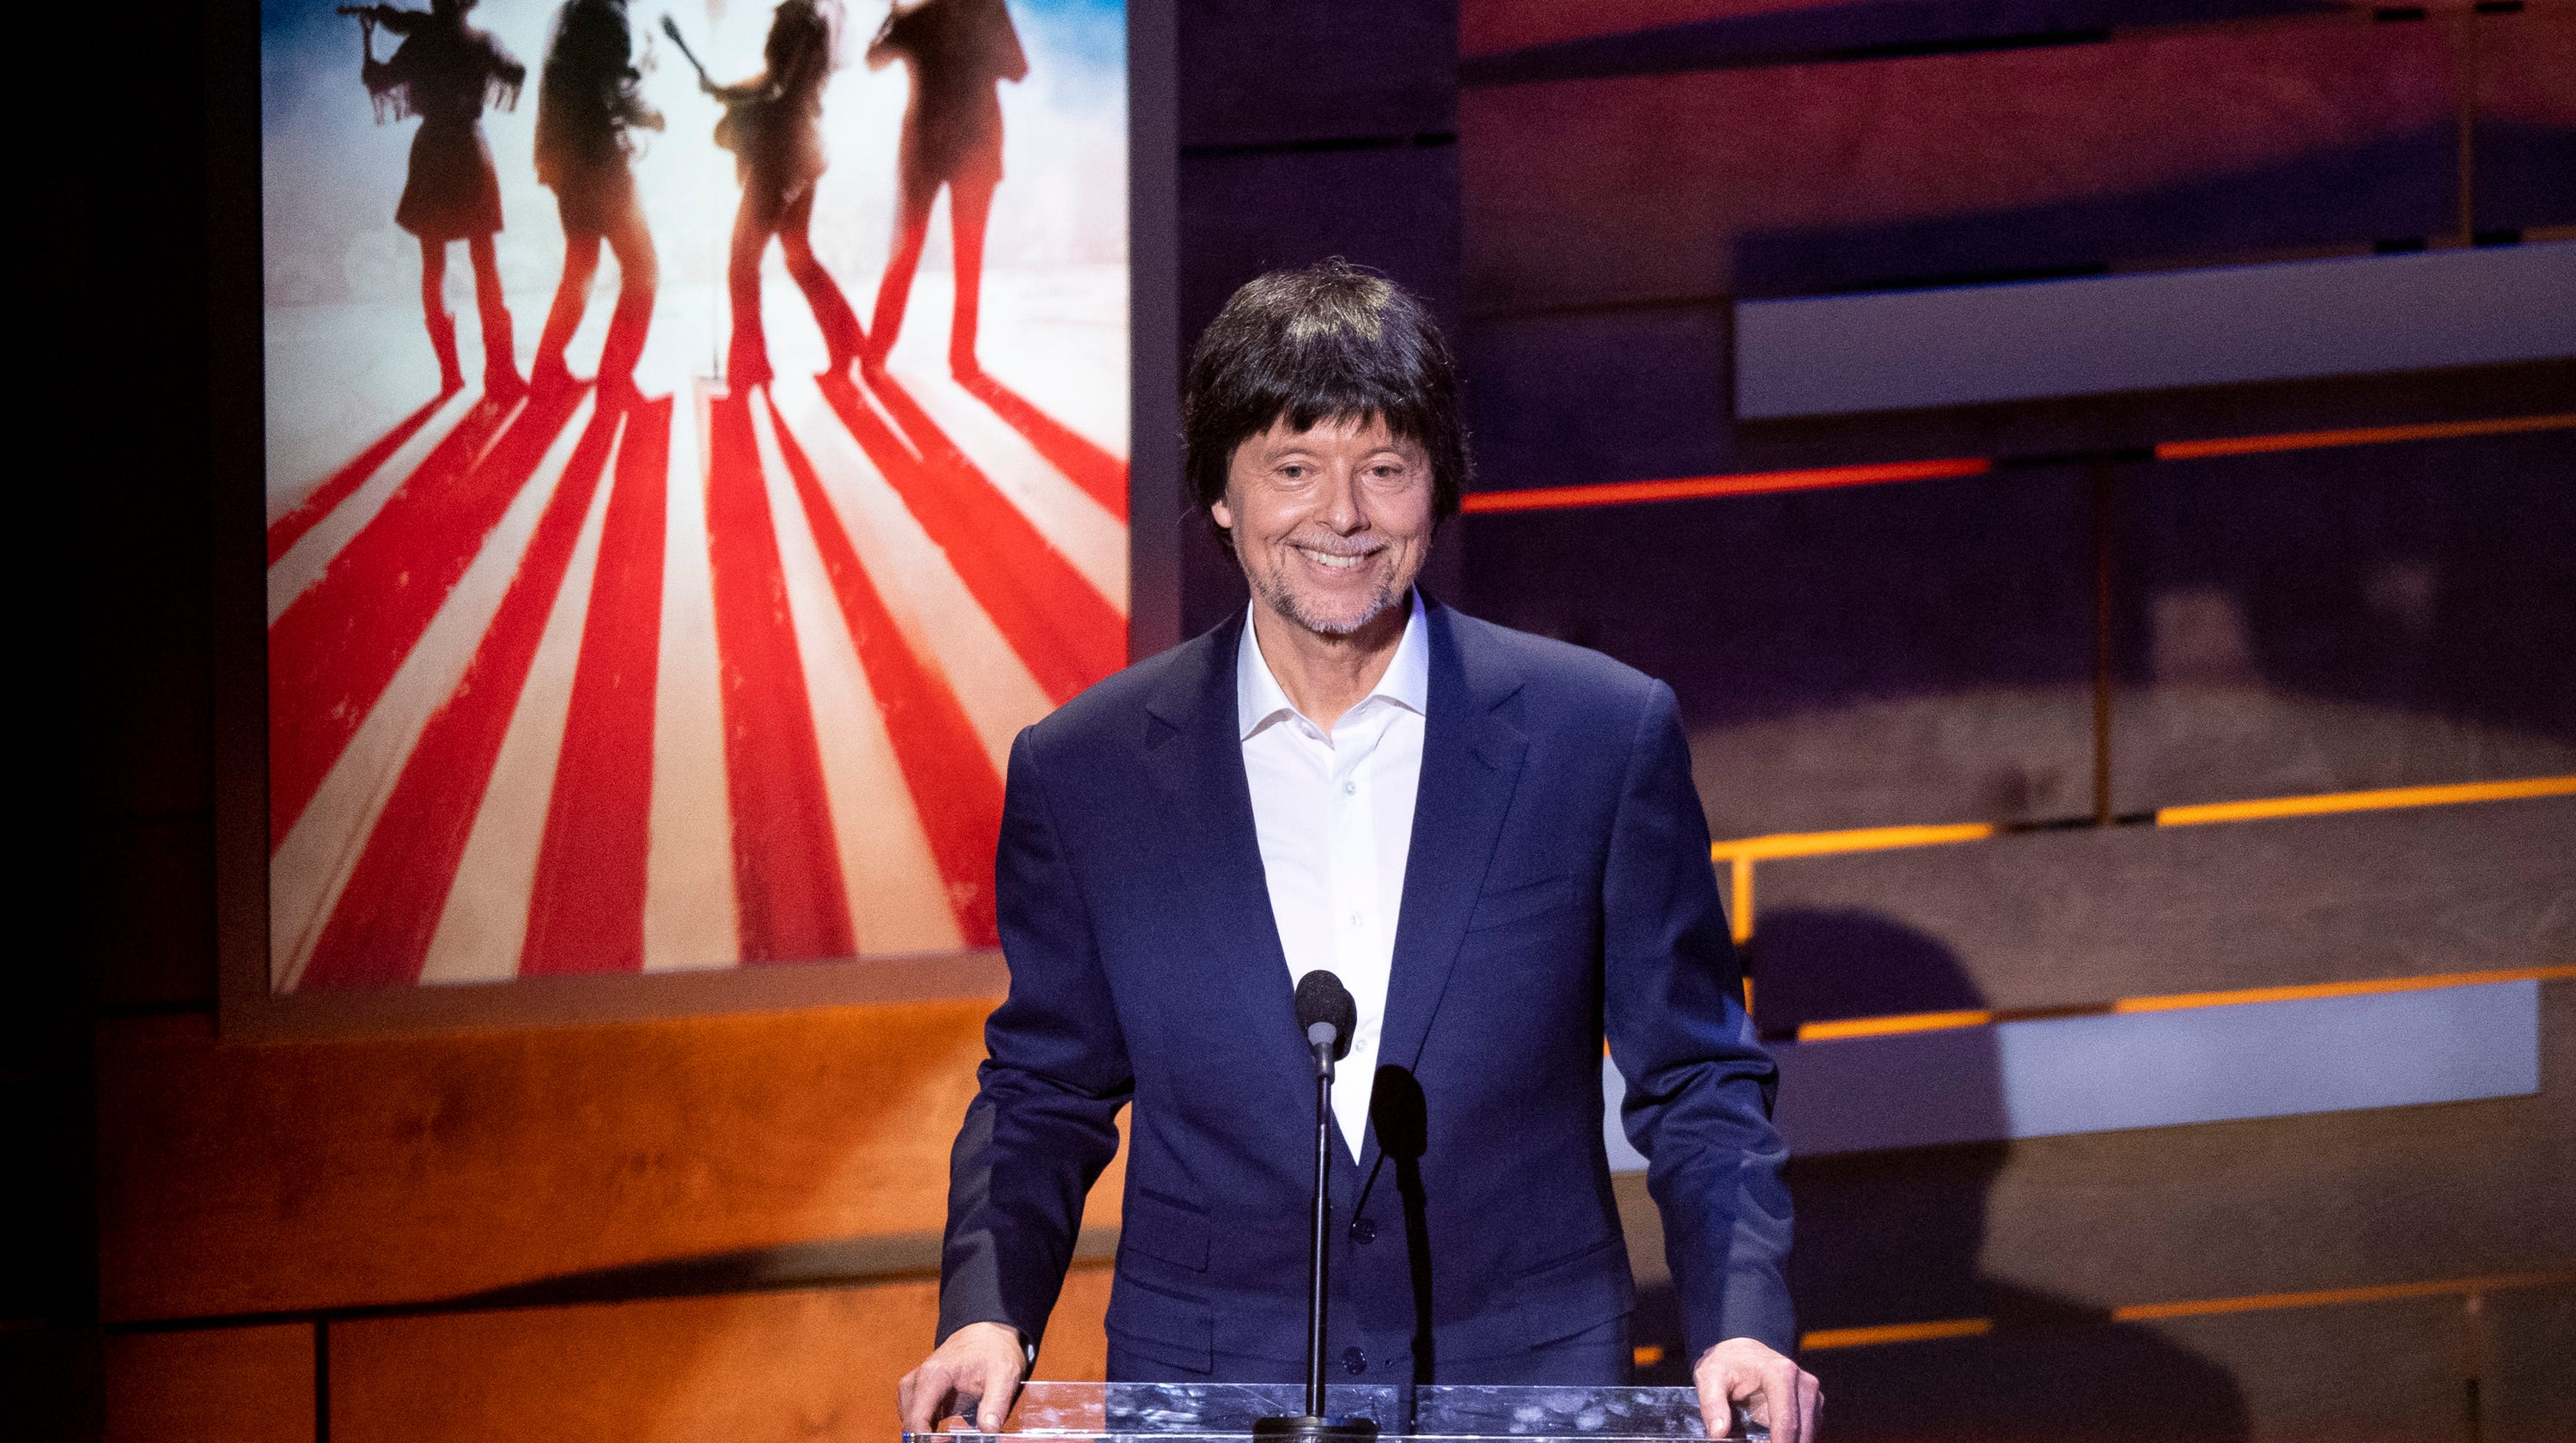 Ken Burns talks Dolly Parton, Merle Haggard and making